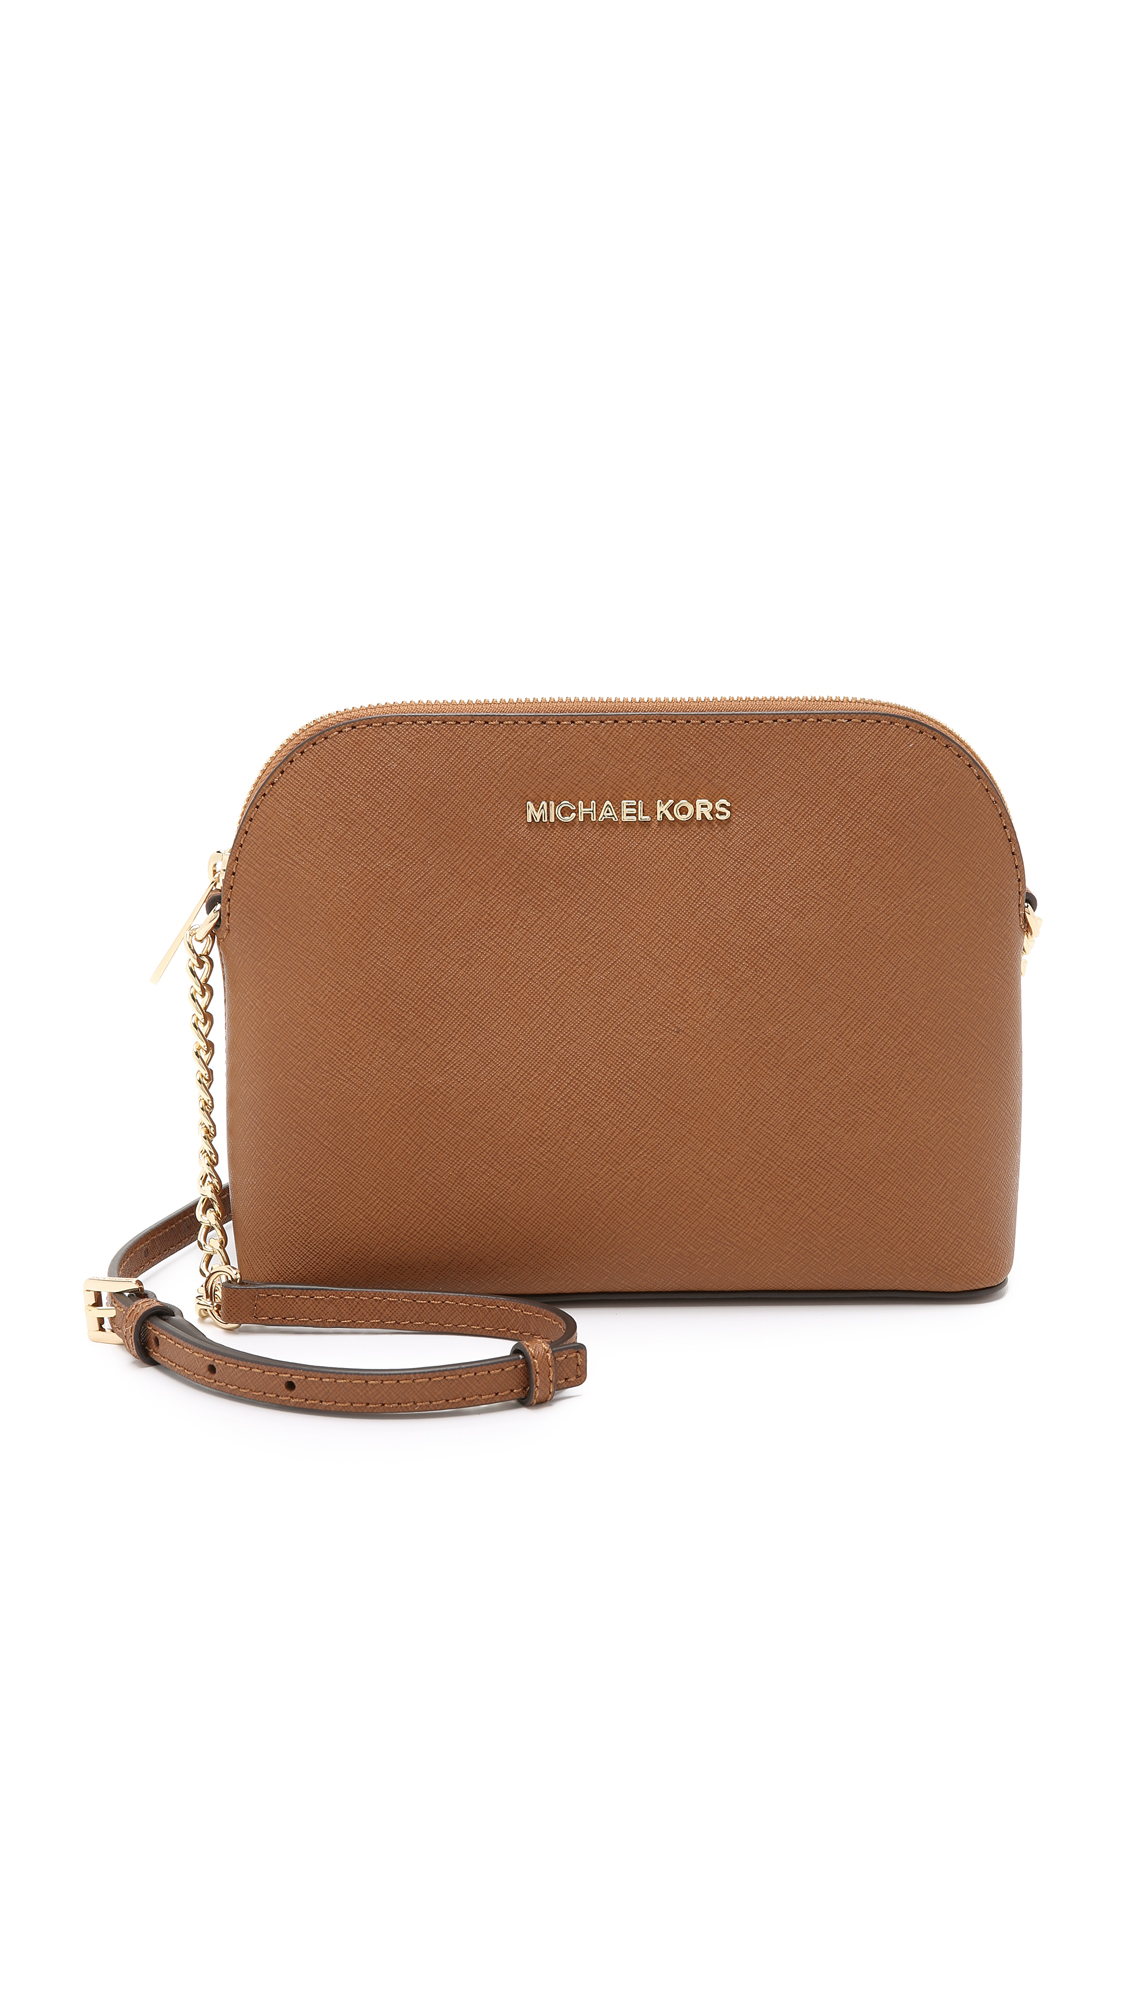 8c62fe9b3b69 Gallery. Previously sold at  Shopbop · Women s Michael Kors Cindy ...